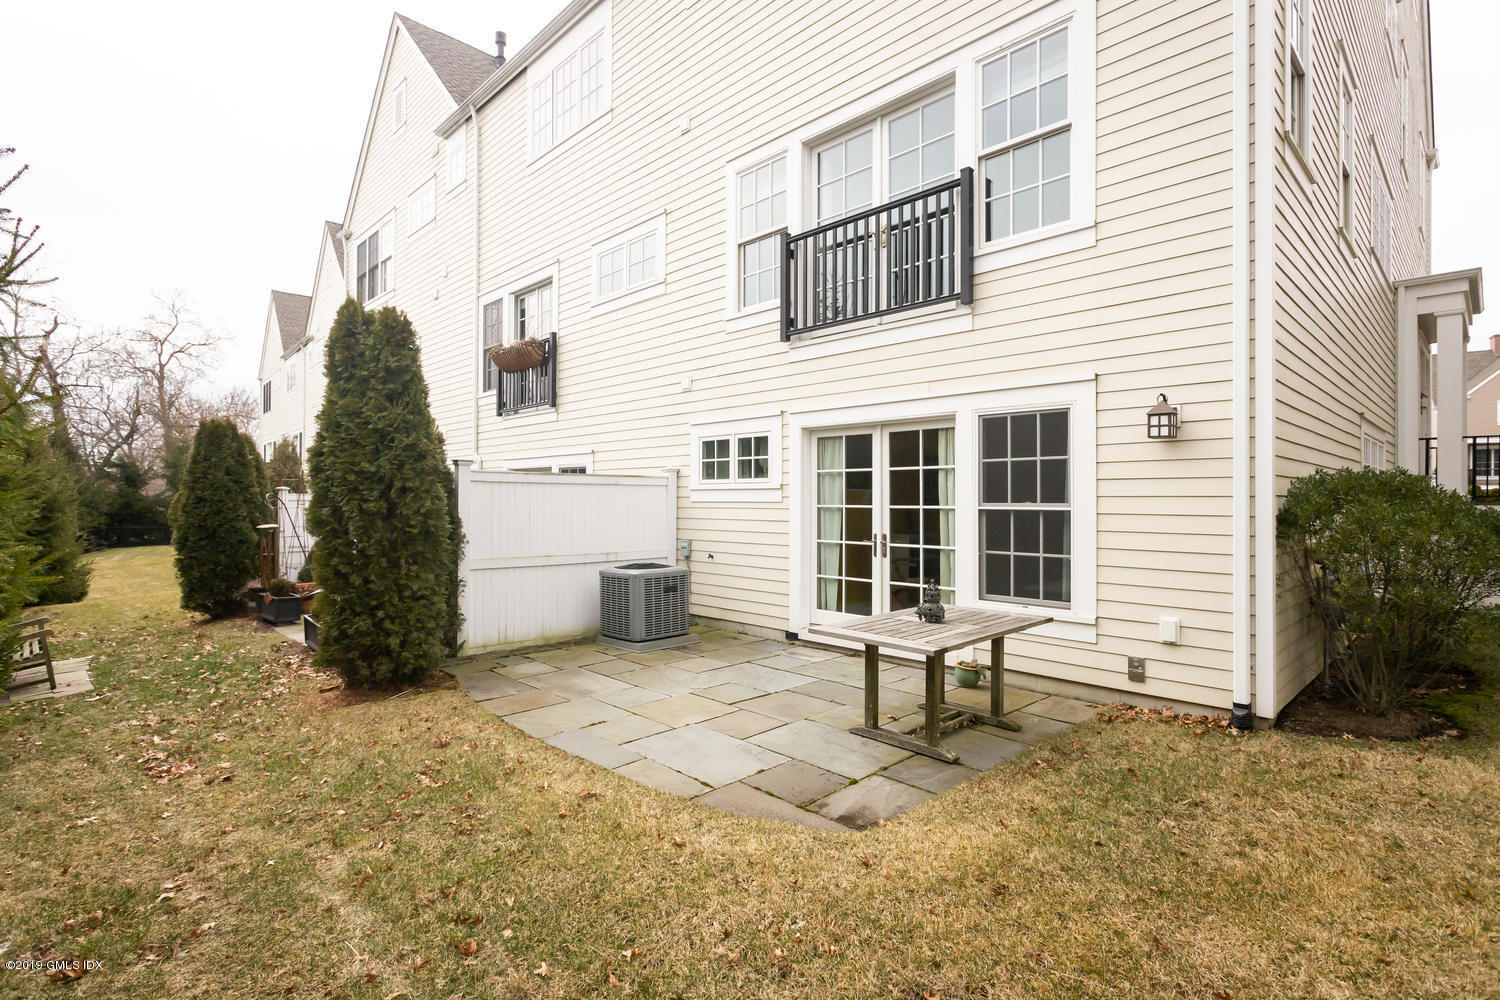 77 Havemeyer Lane, #106, Stamford, CT 06902